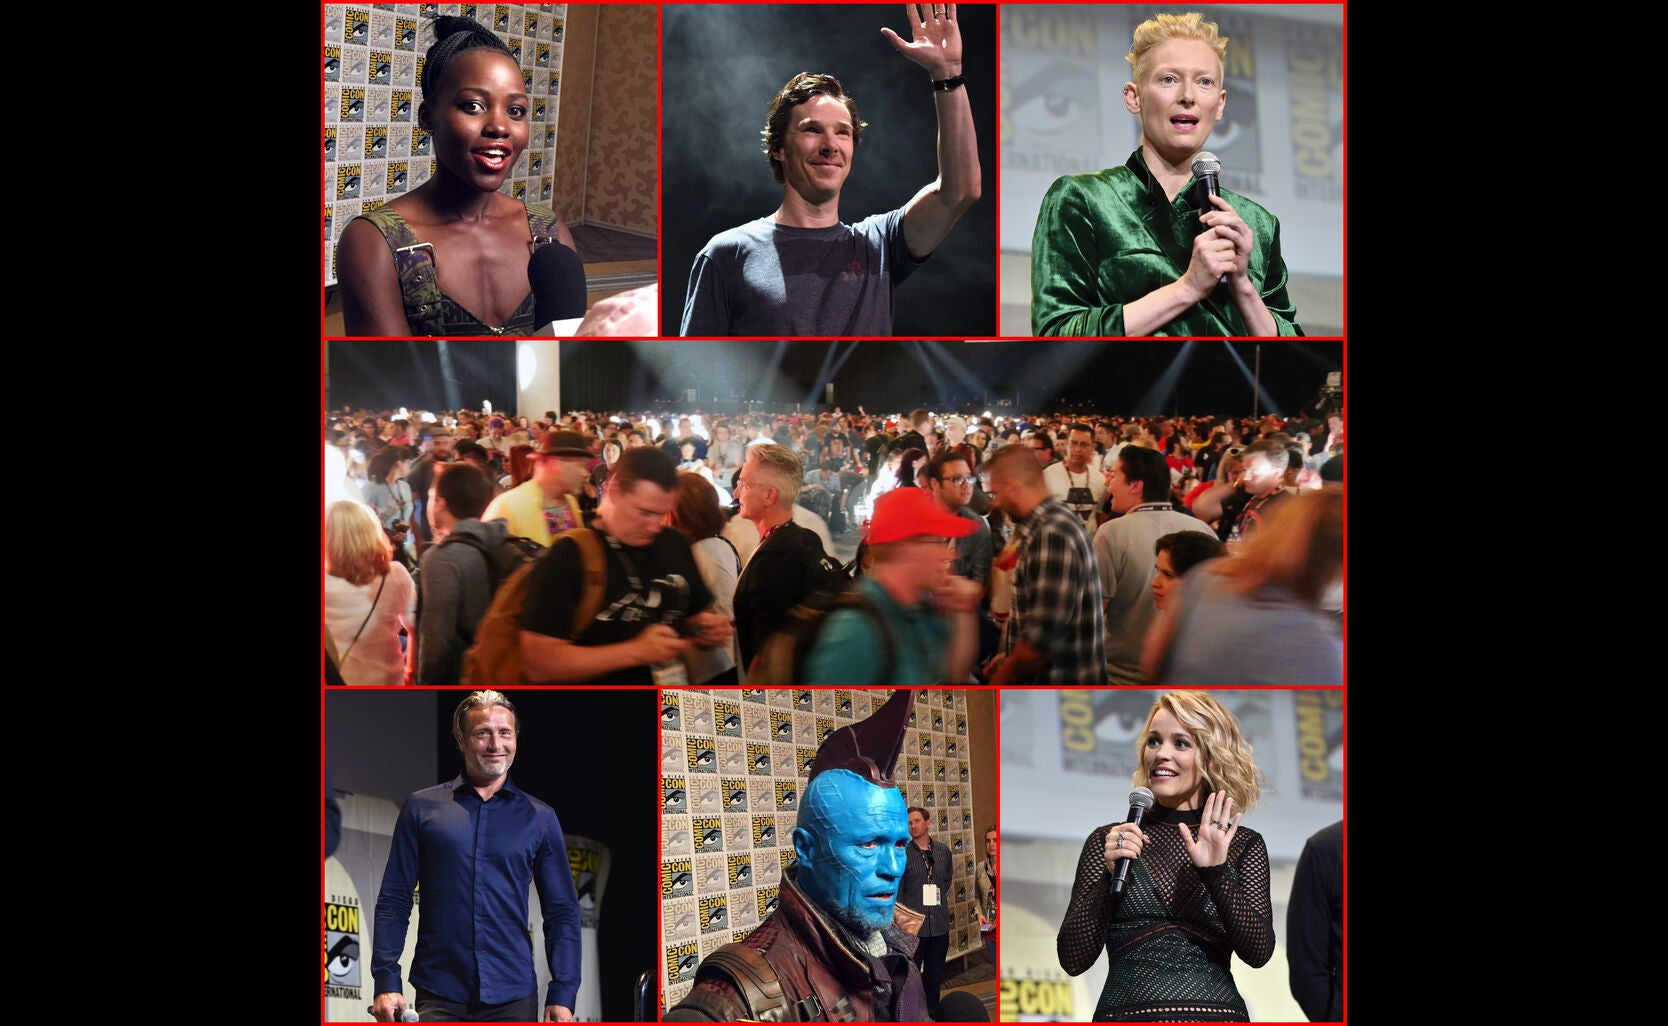 Scenes from the Marvel Studios presentation at Comic-Con 2016